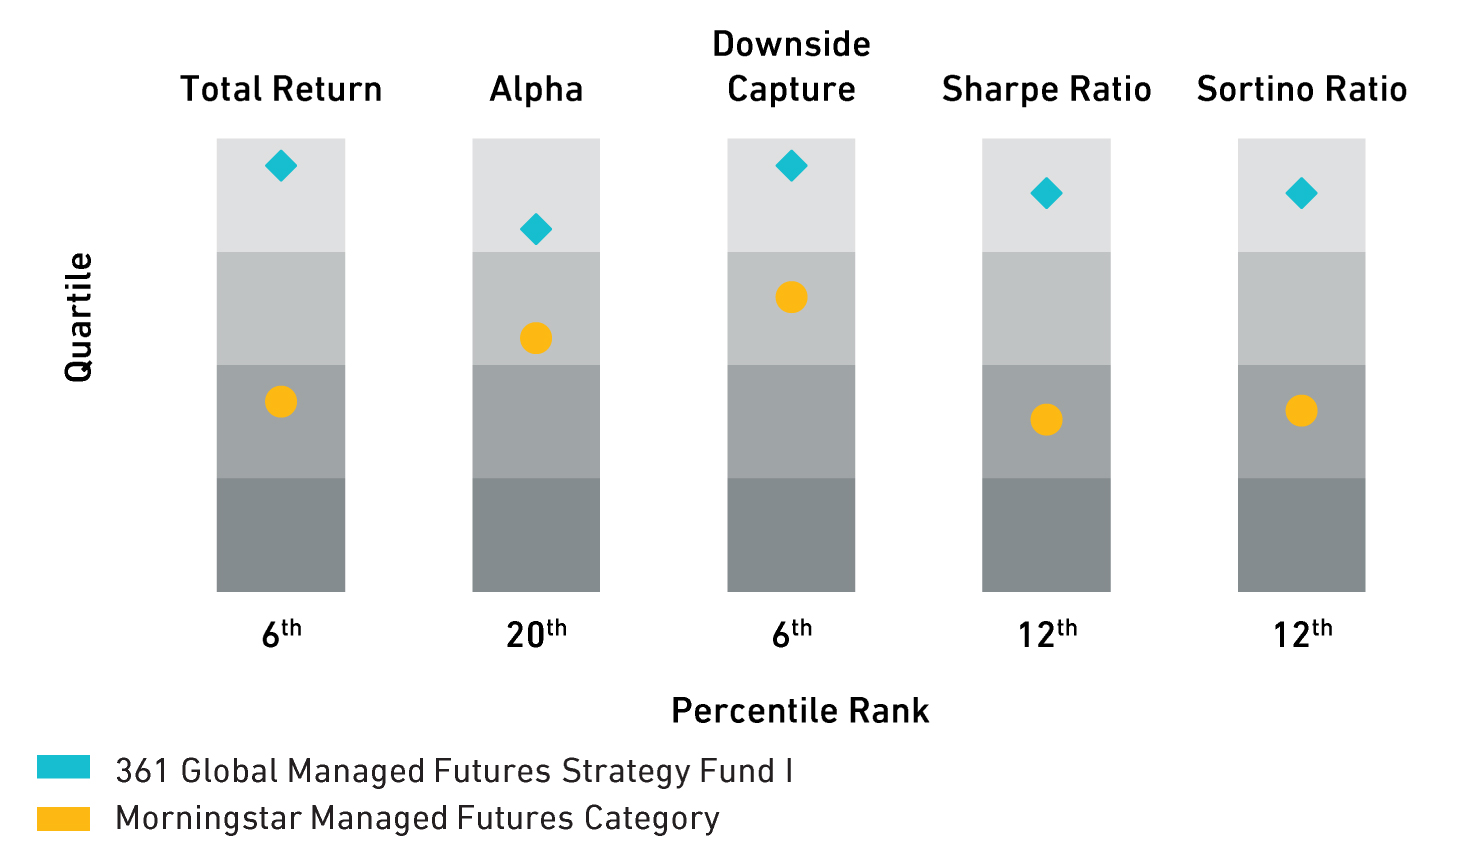 Global Managed Futures Strategy Fund Portfolio Statistics Percentile Rankings